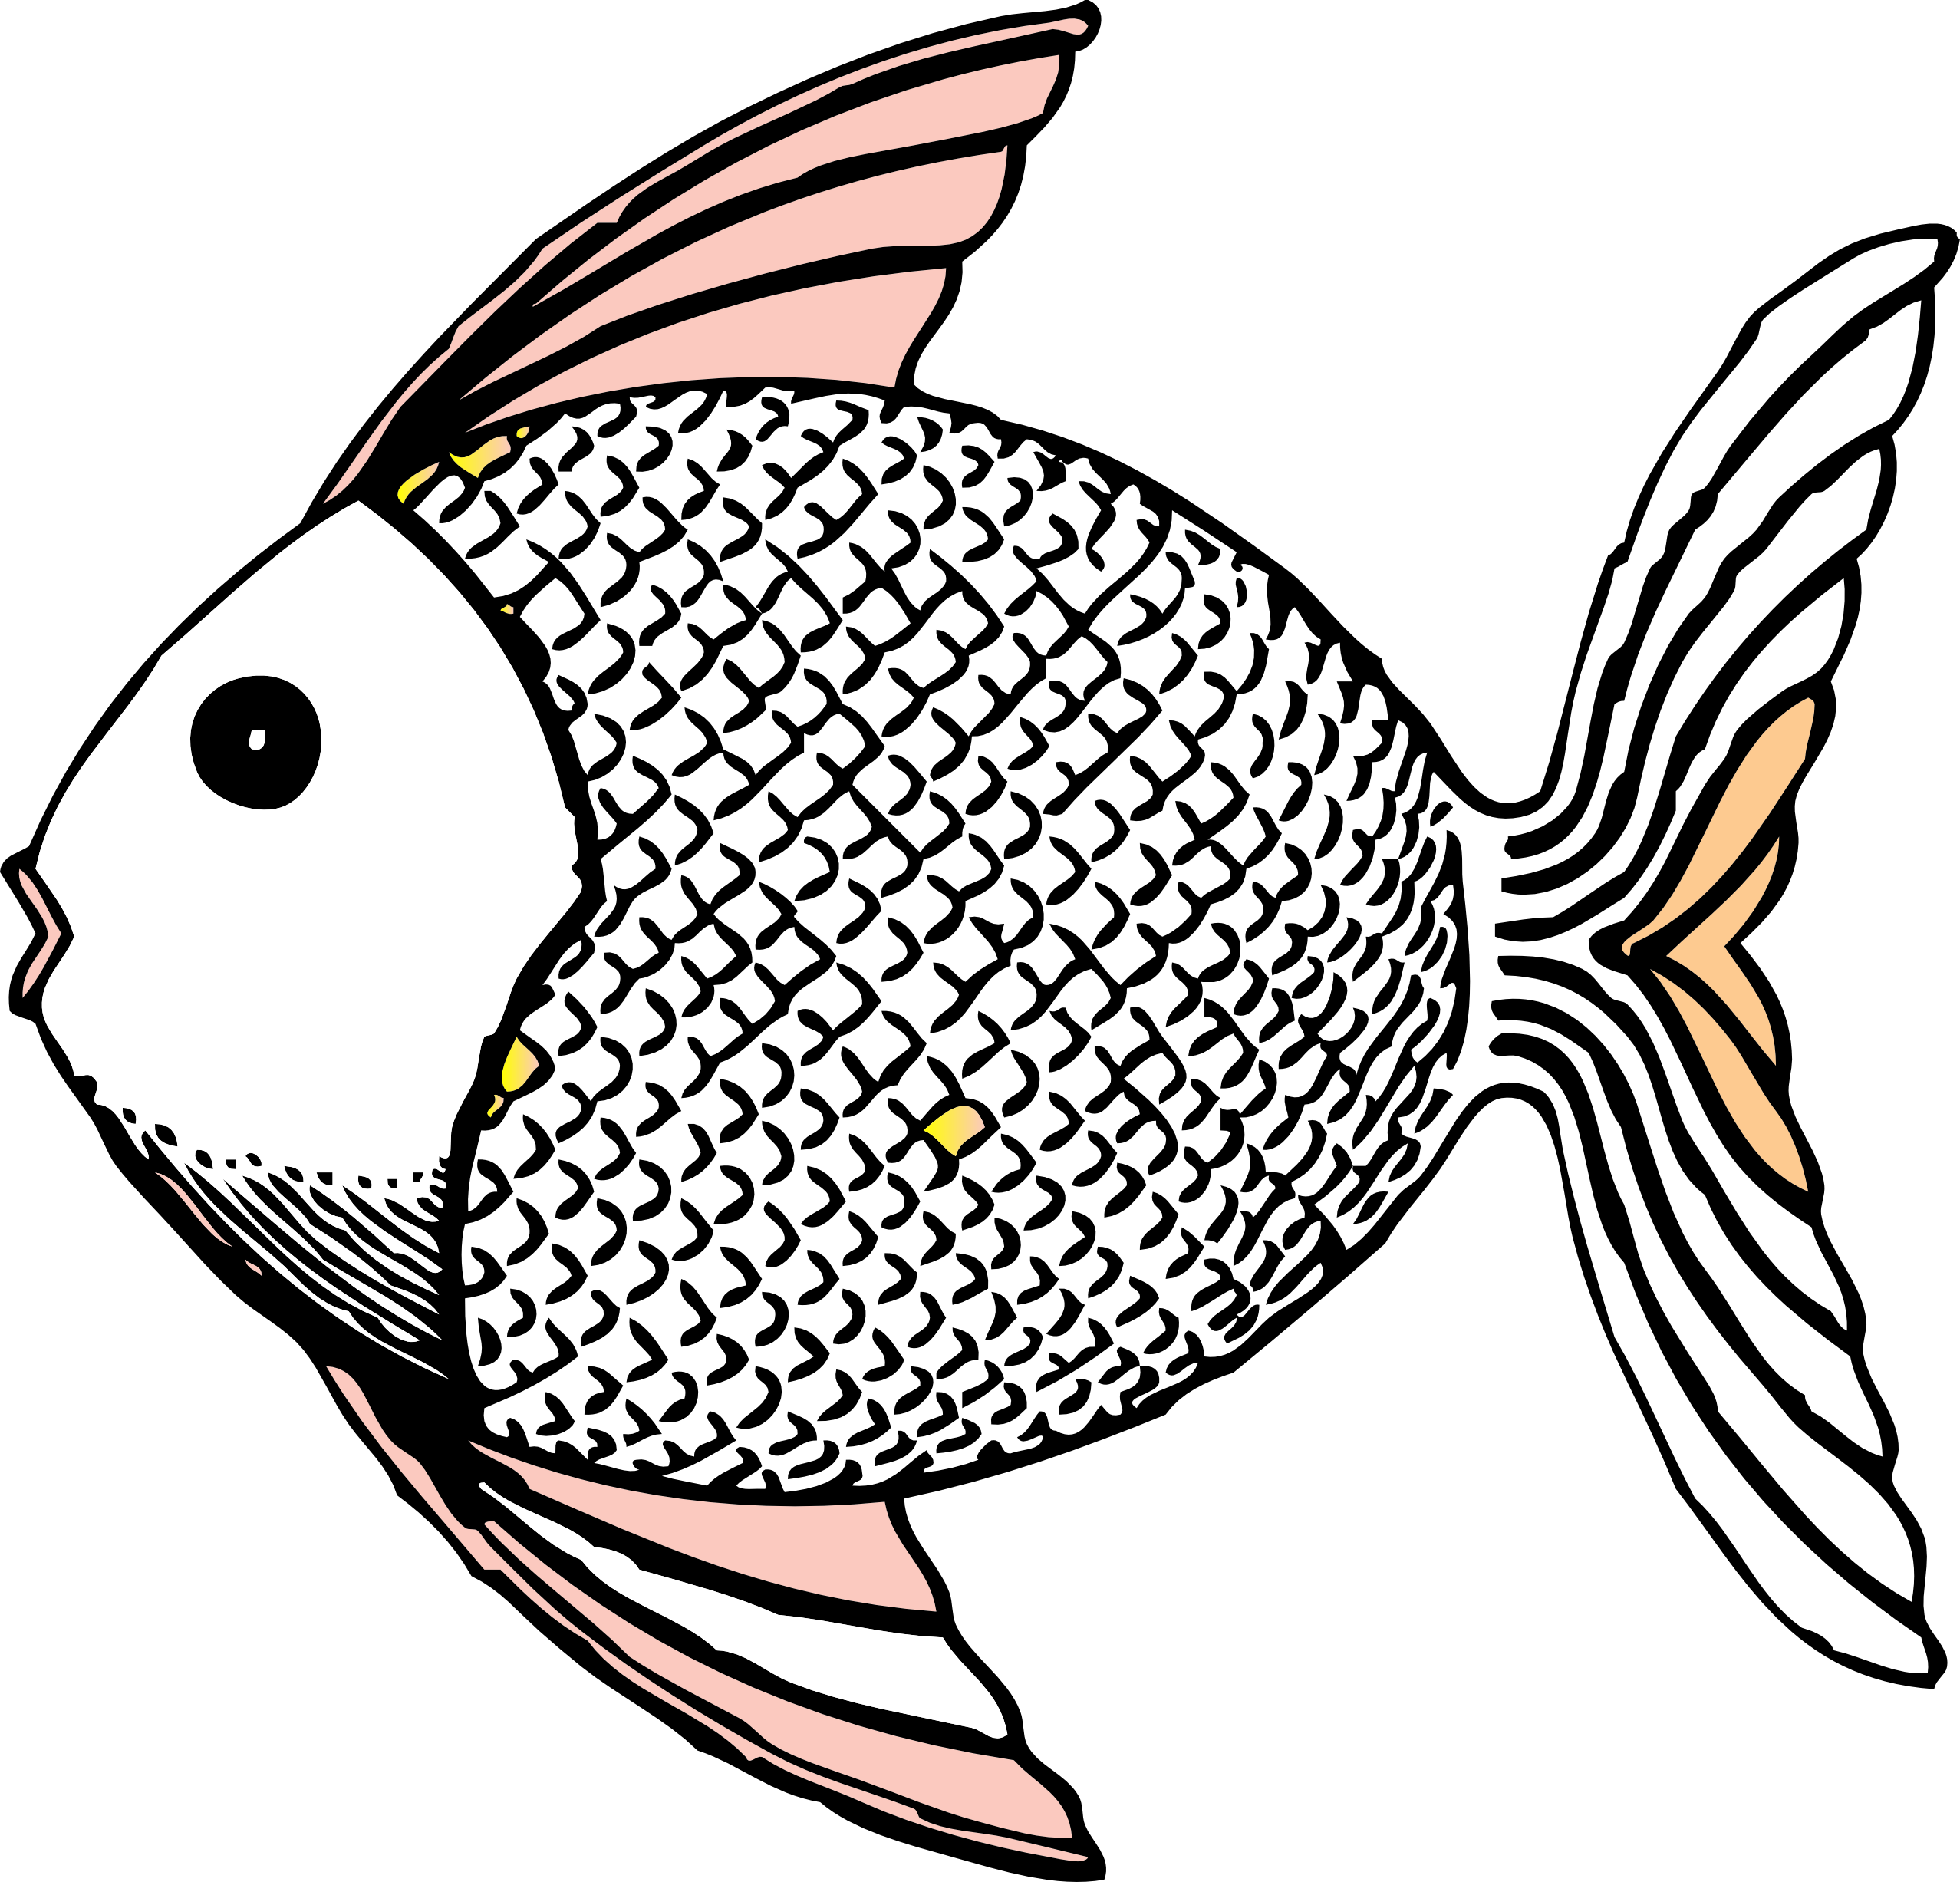 Fly fish clipart black and white. Clip art tropical line